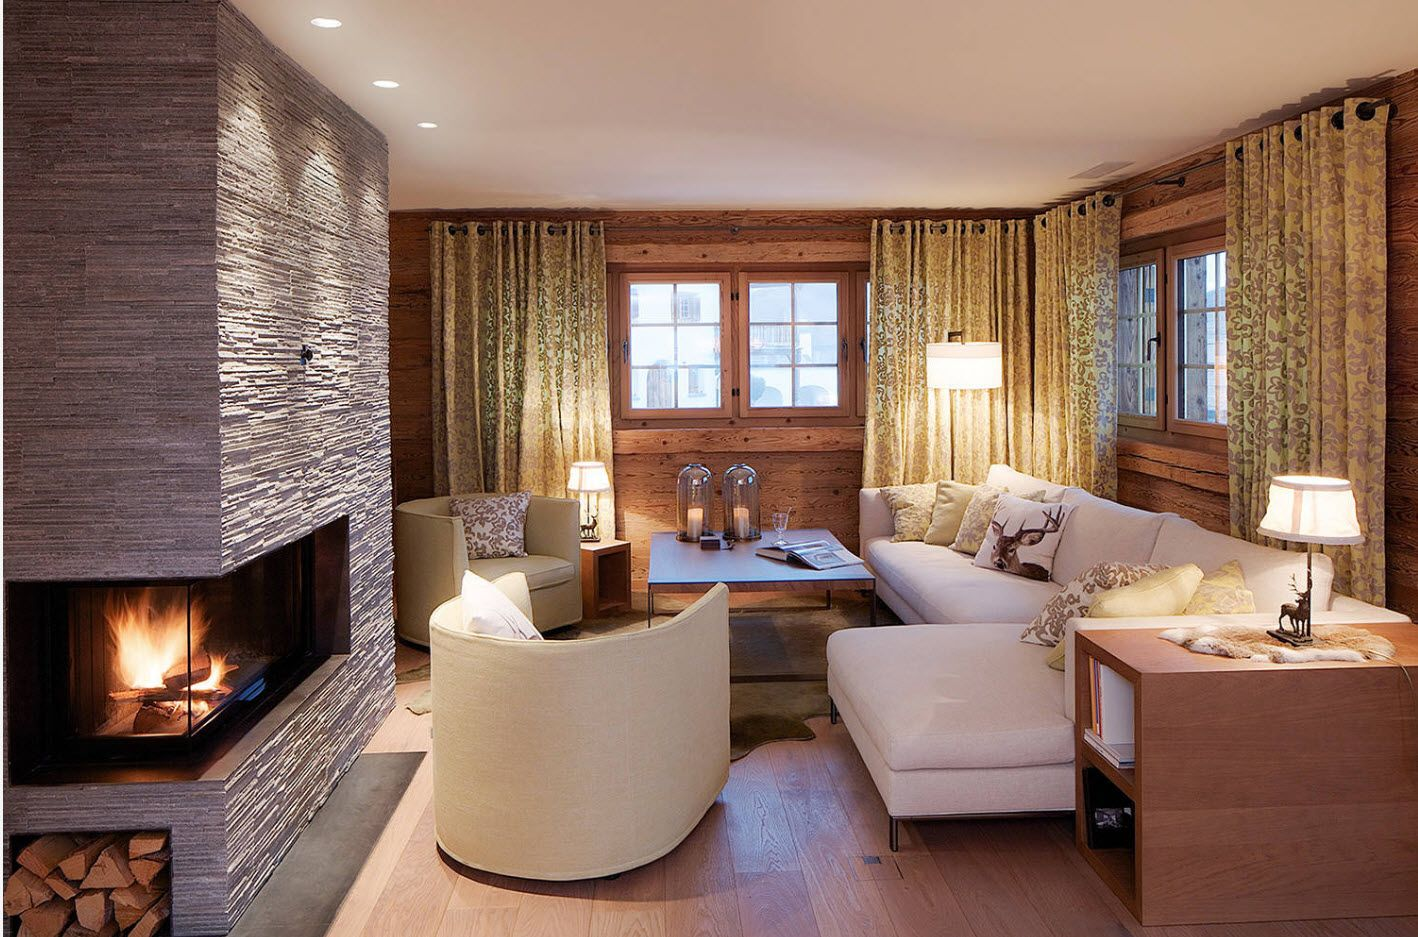 Wooden wall and latticed windows at the warm homey living room with fireplace